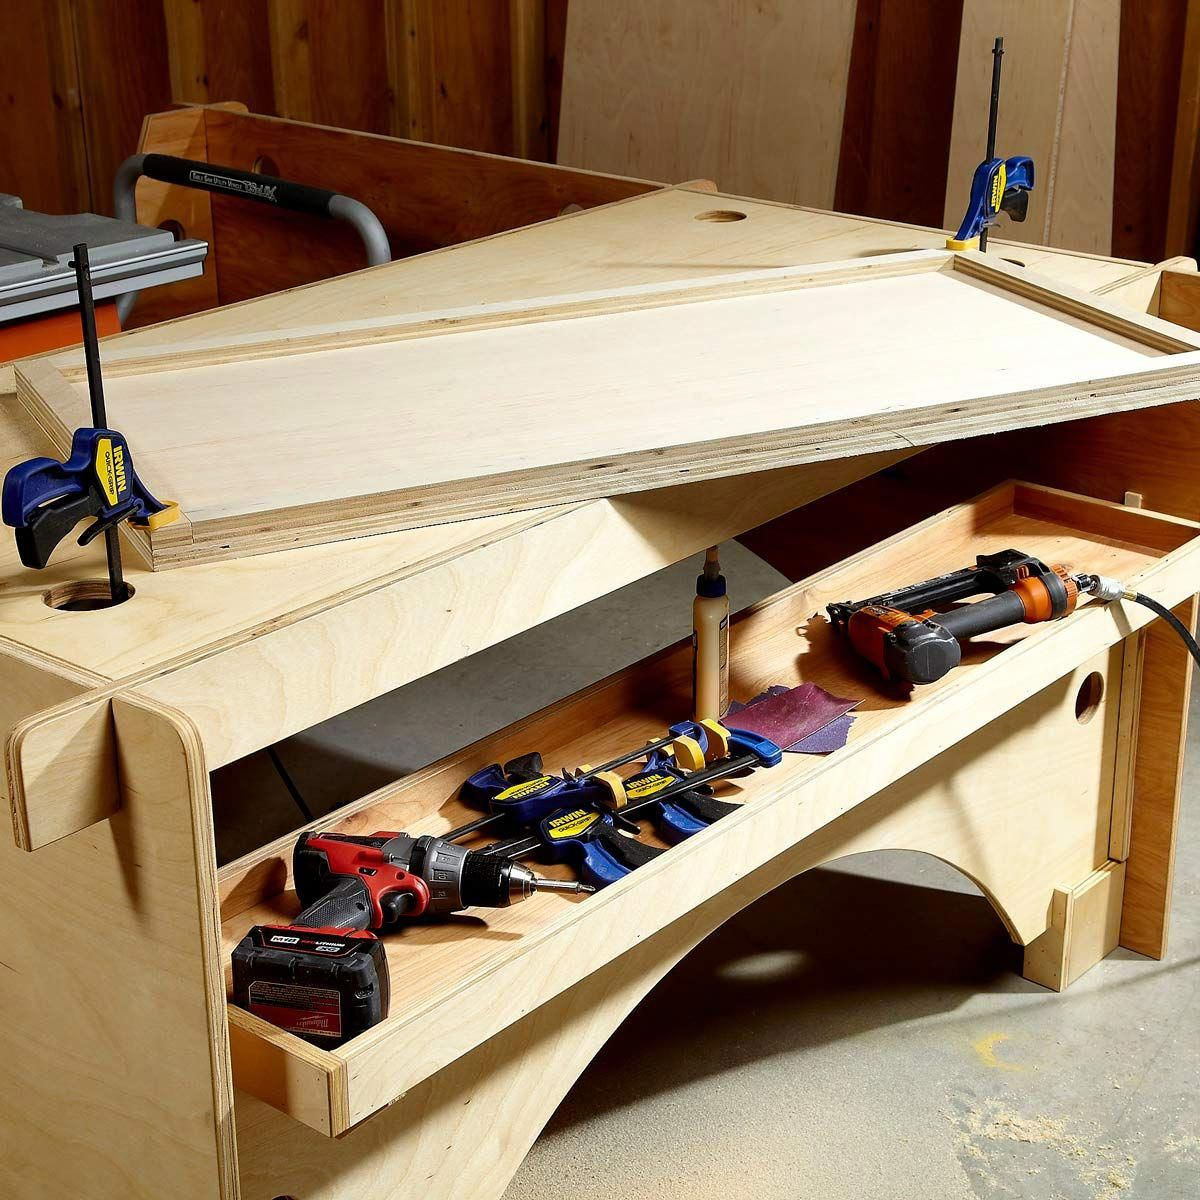 DIY Table Saw Table The Family Handyman woodsaw Diy